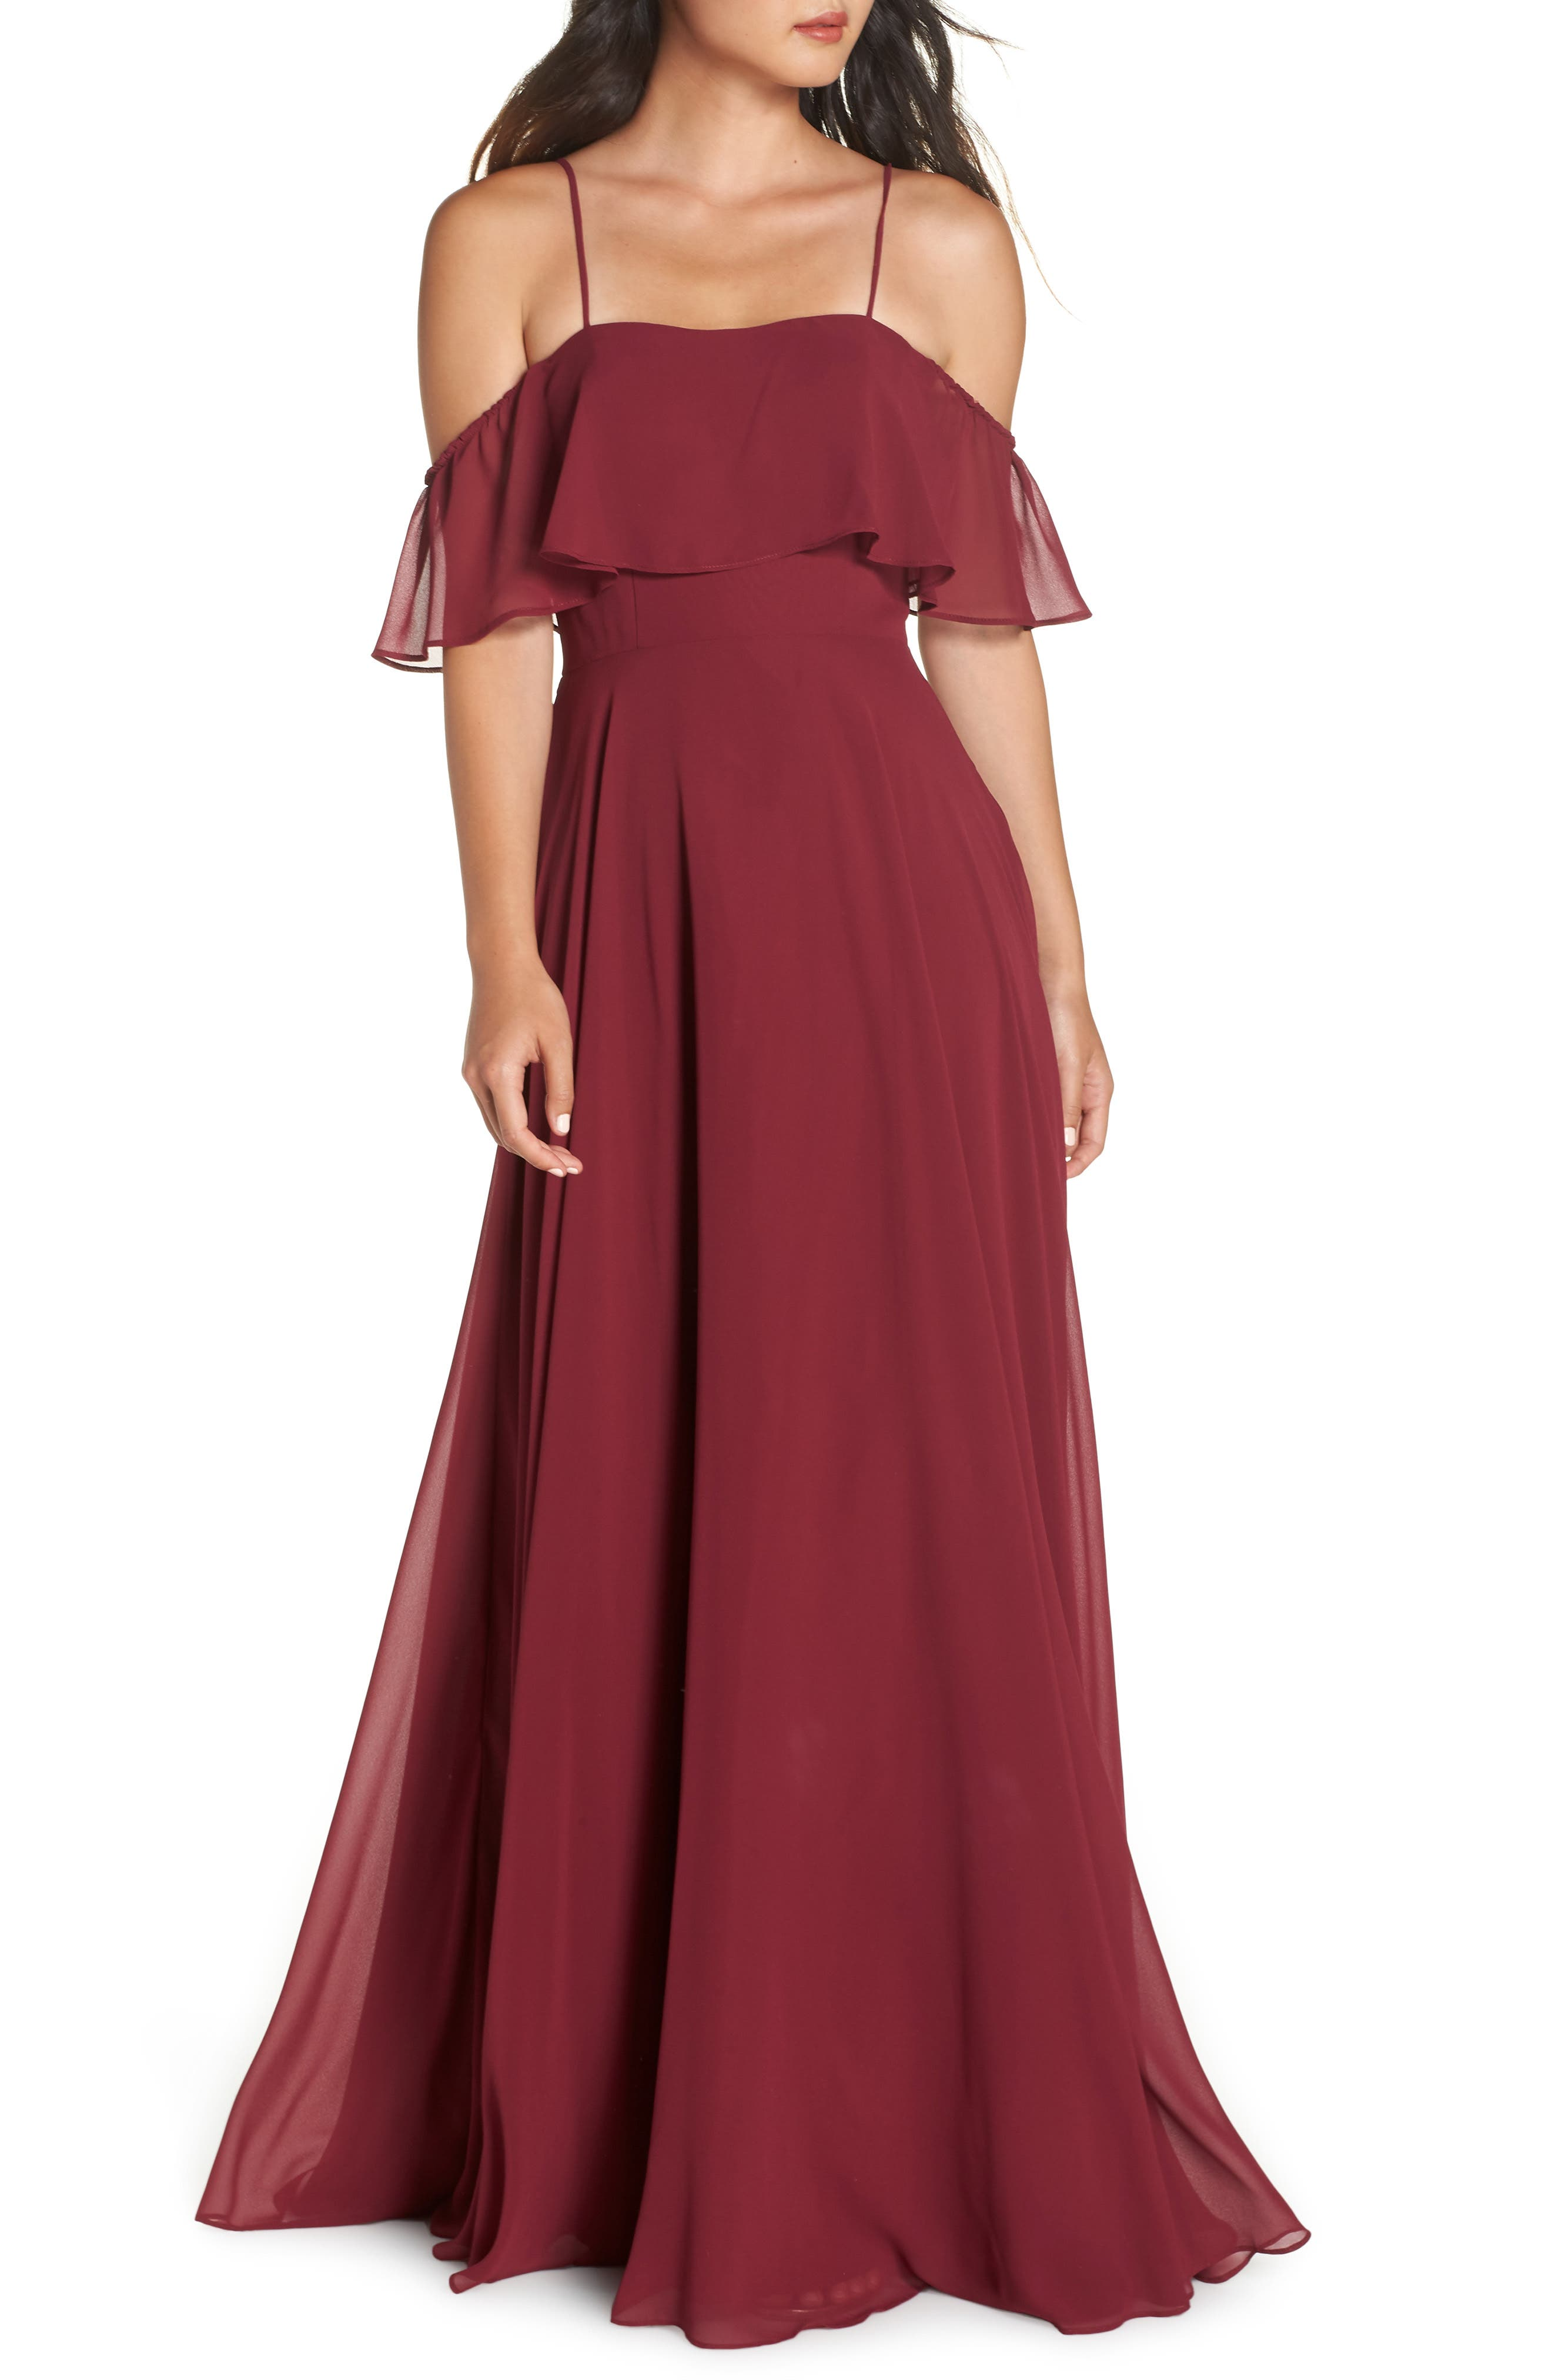 Hayley Paige Occasions Chiffon Cold Shoulder Gown, Burgundy